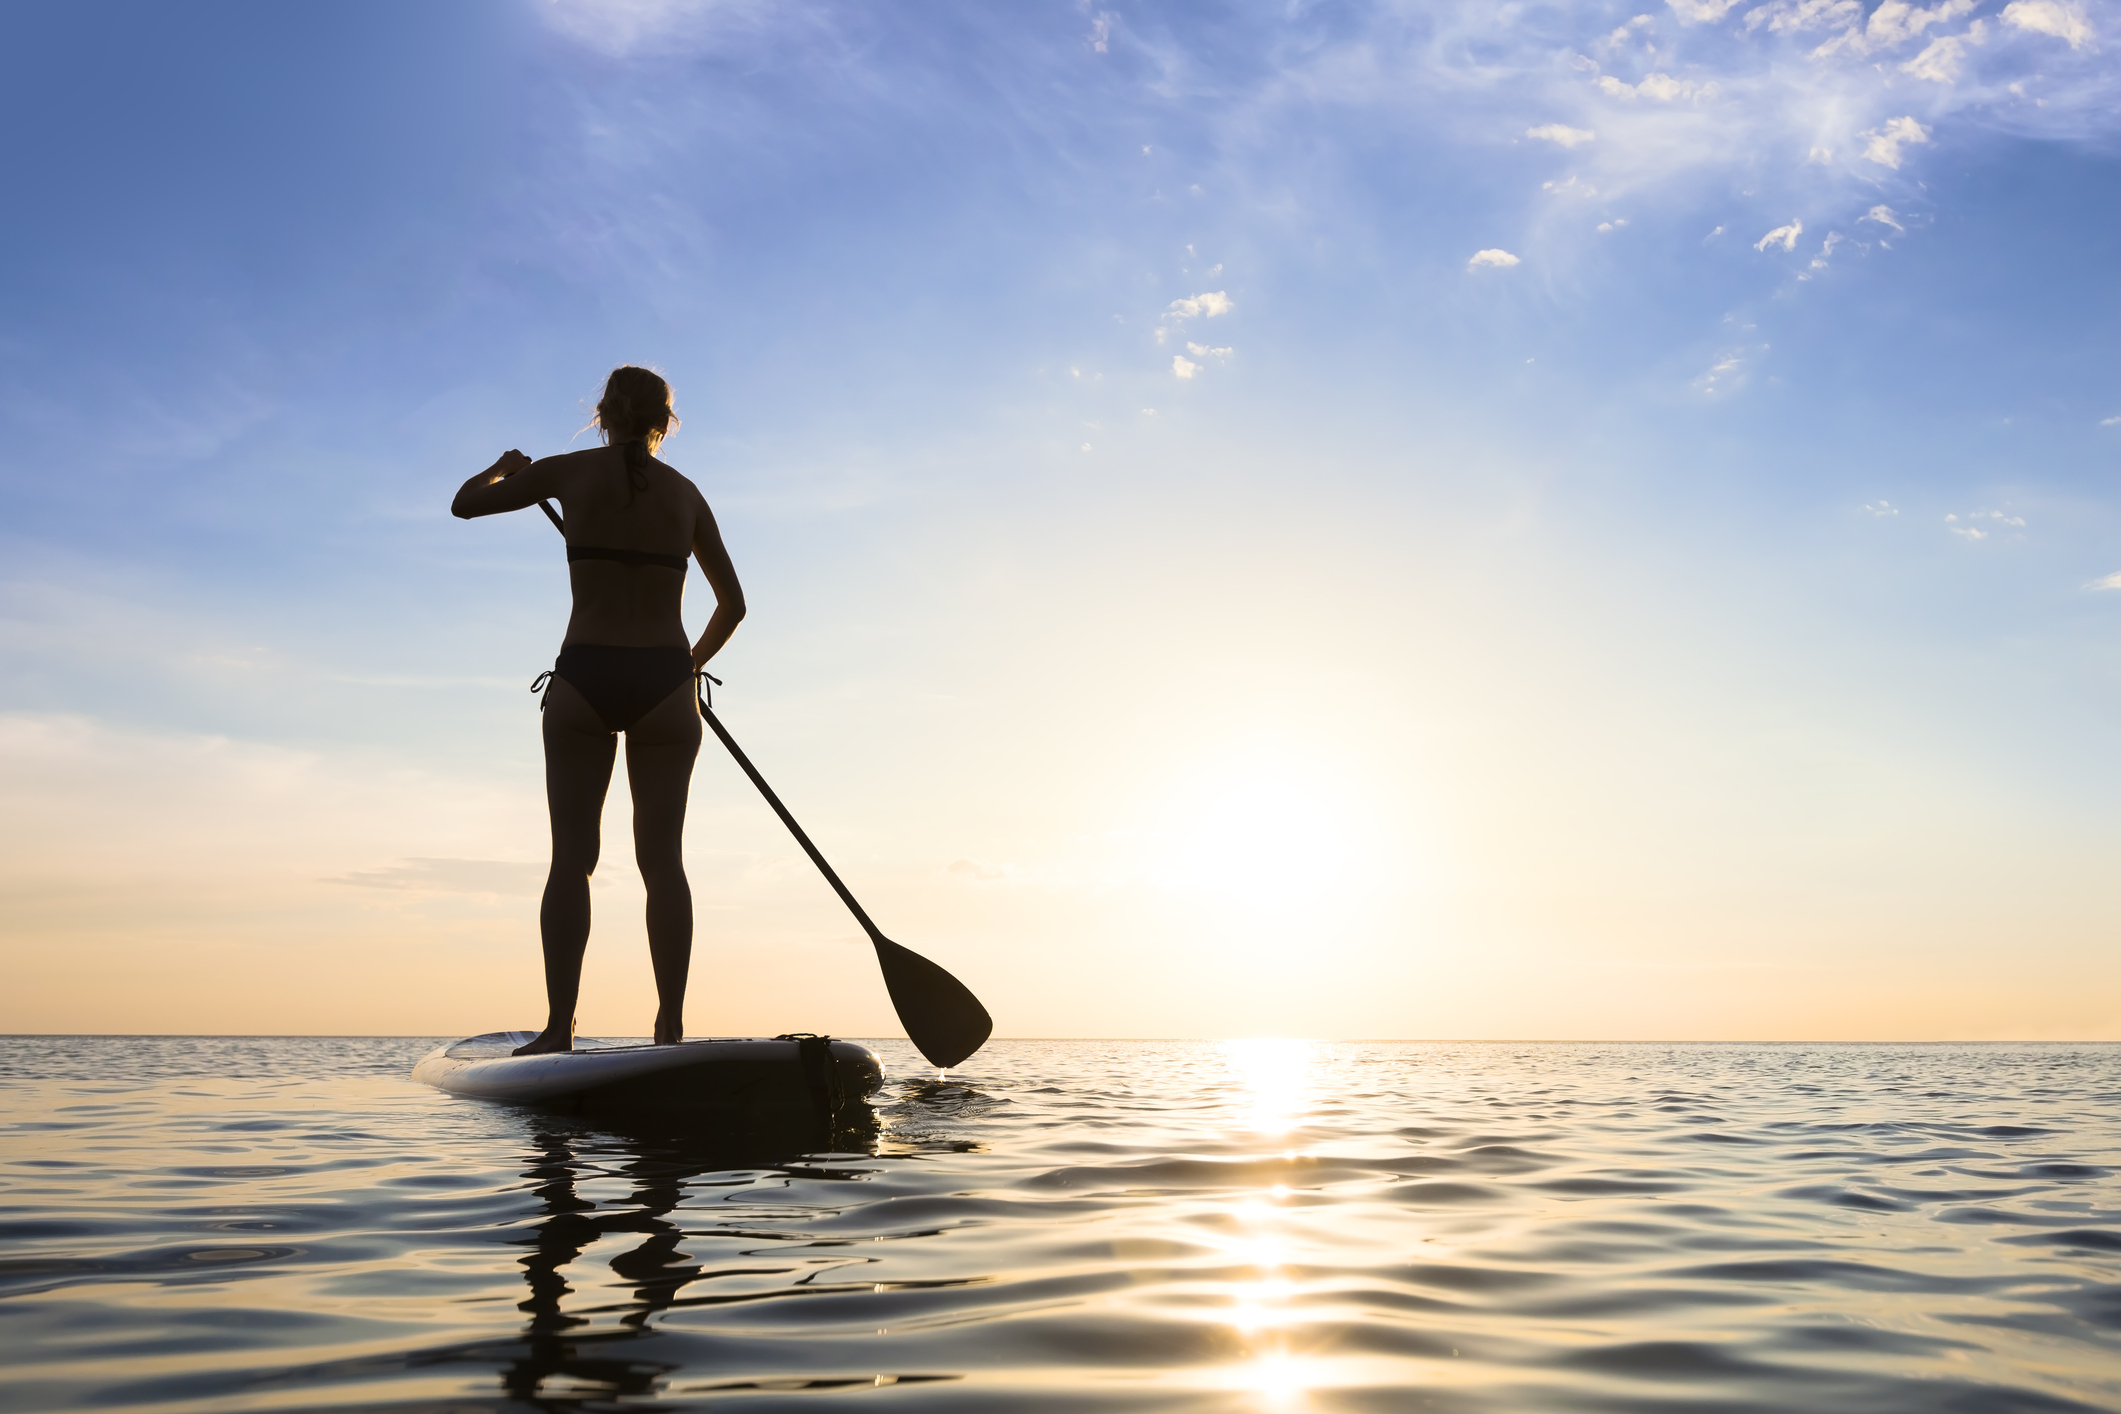 Paddleboard Your Way To A Better You!